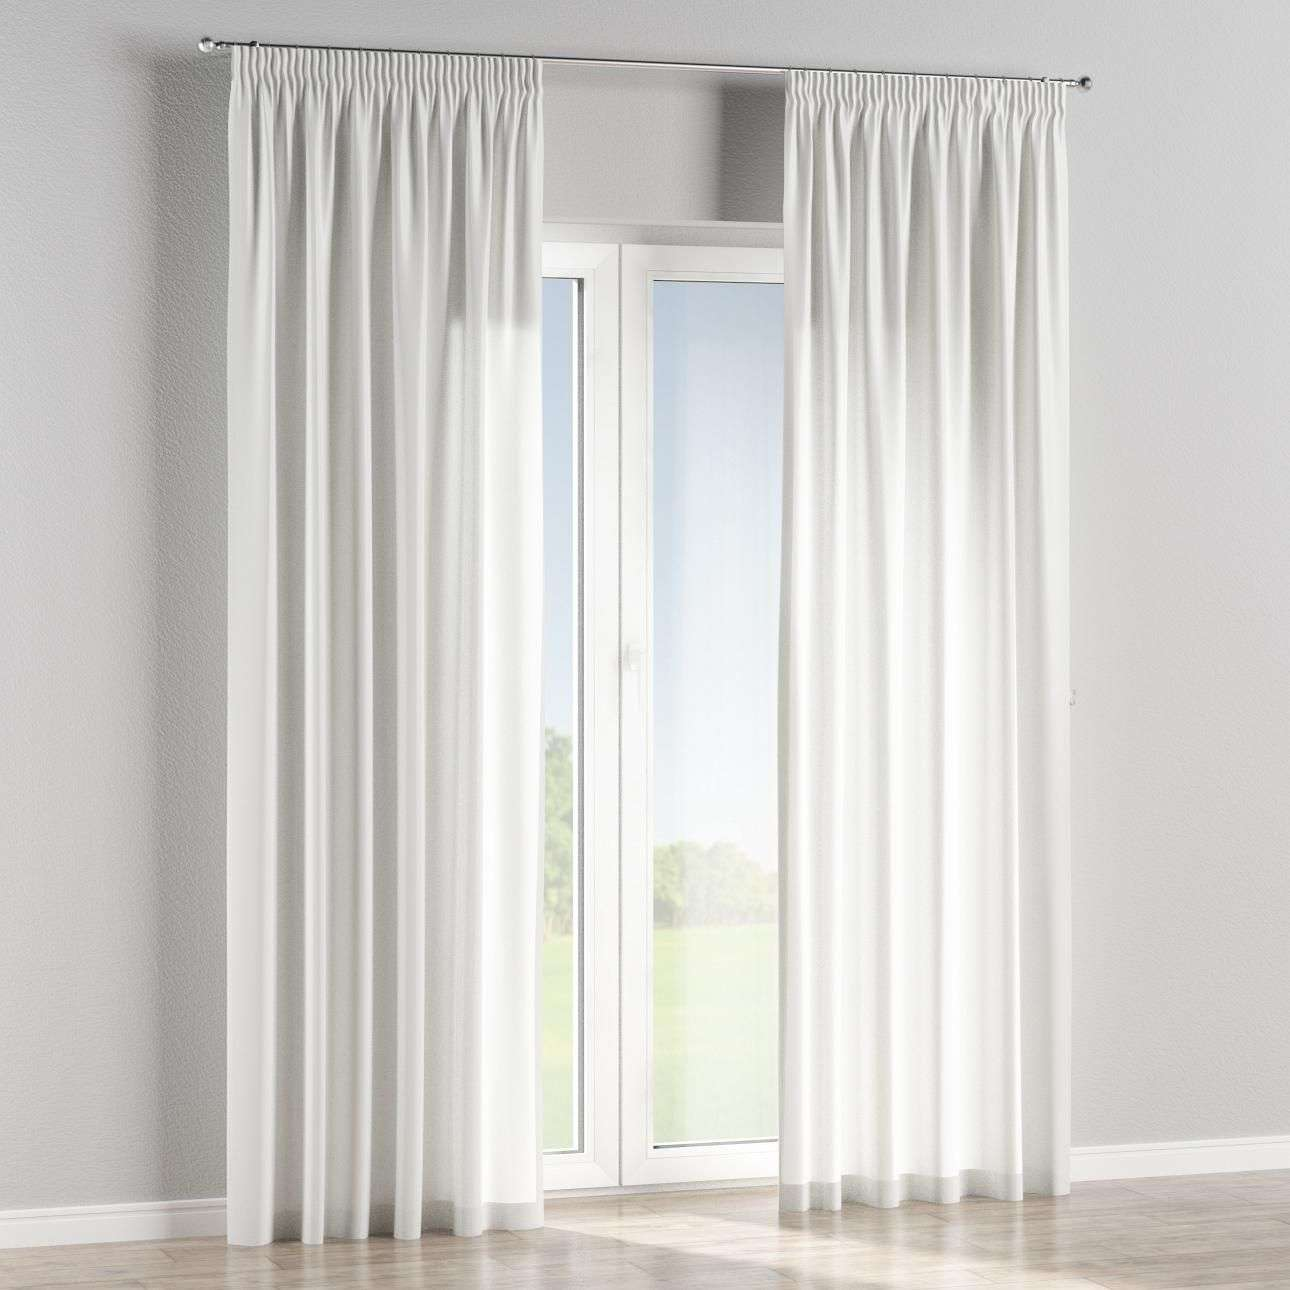 Pencil pleat lined curtains in collection Monet, fabric: 140-06